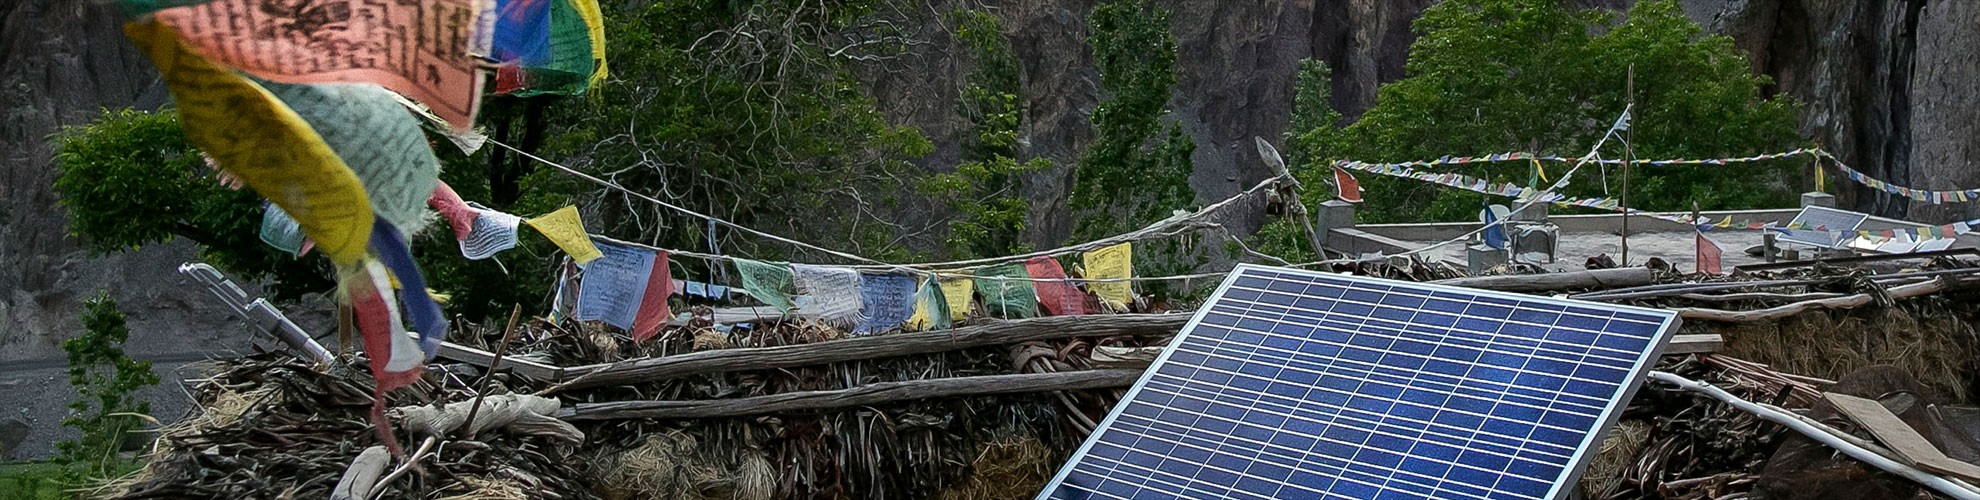 Prayer flags fly over rooftop solar panels. Renewables can bring energy to regions without traditional energy infrastructure.